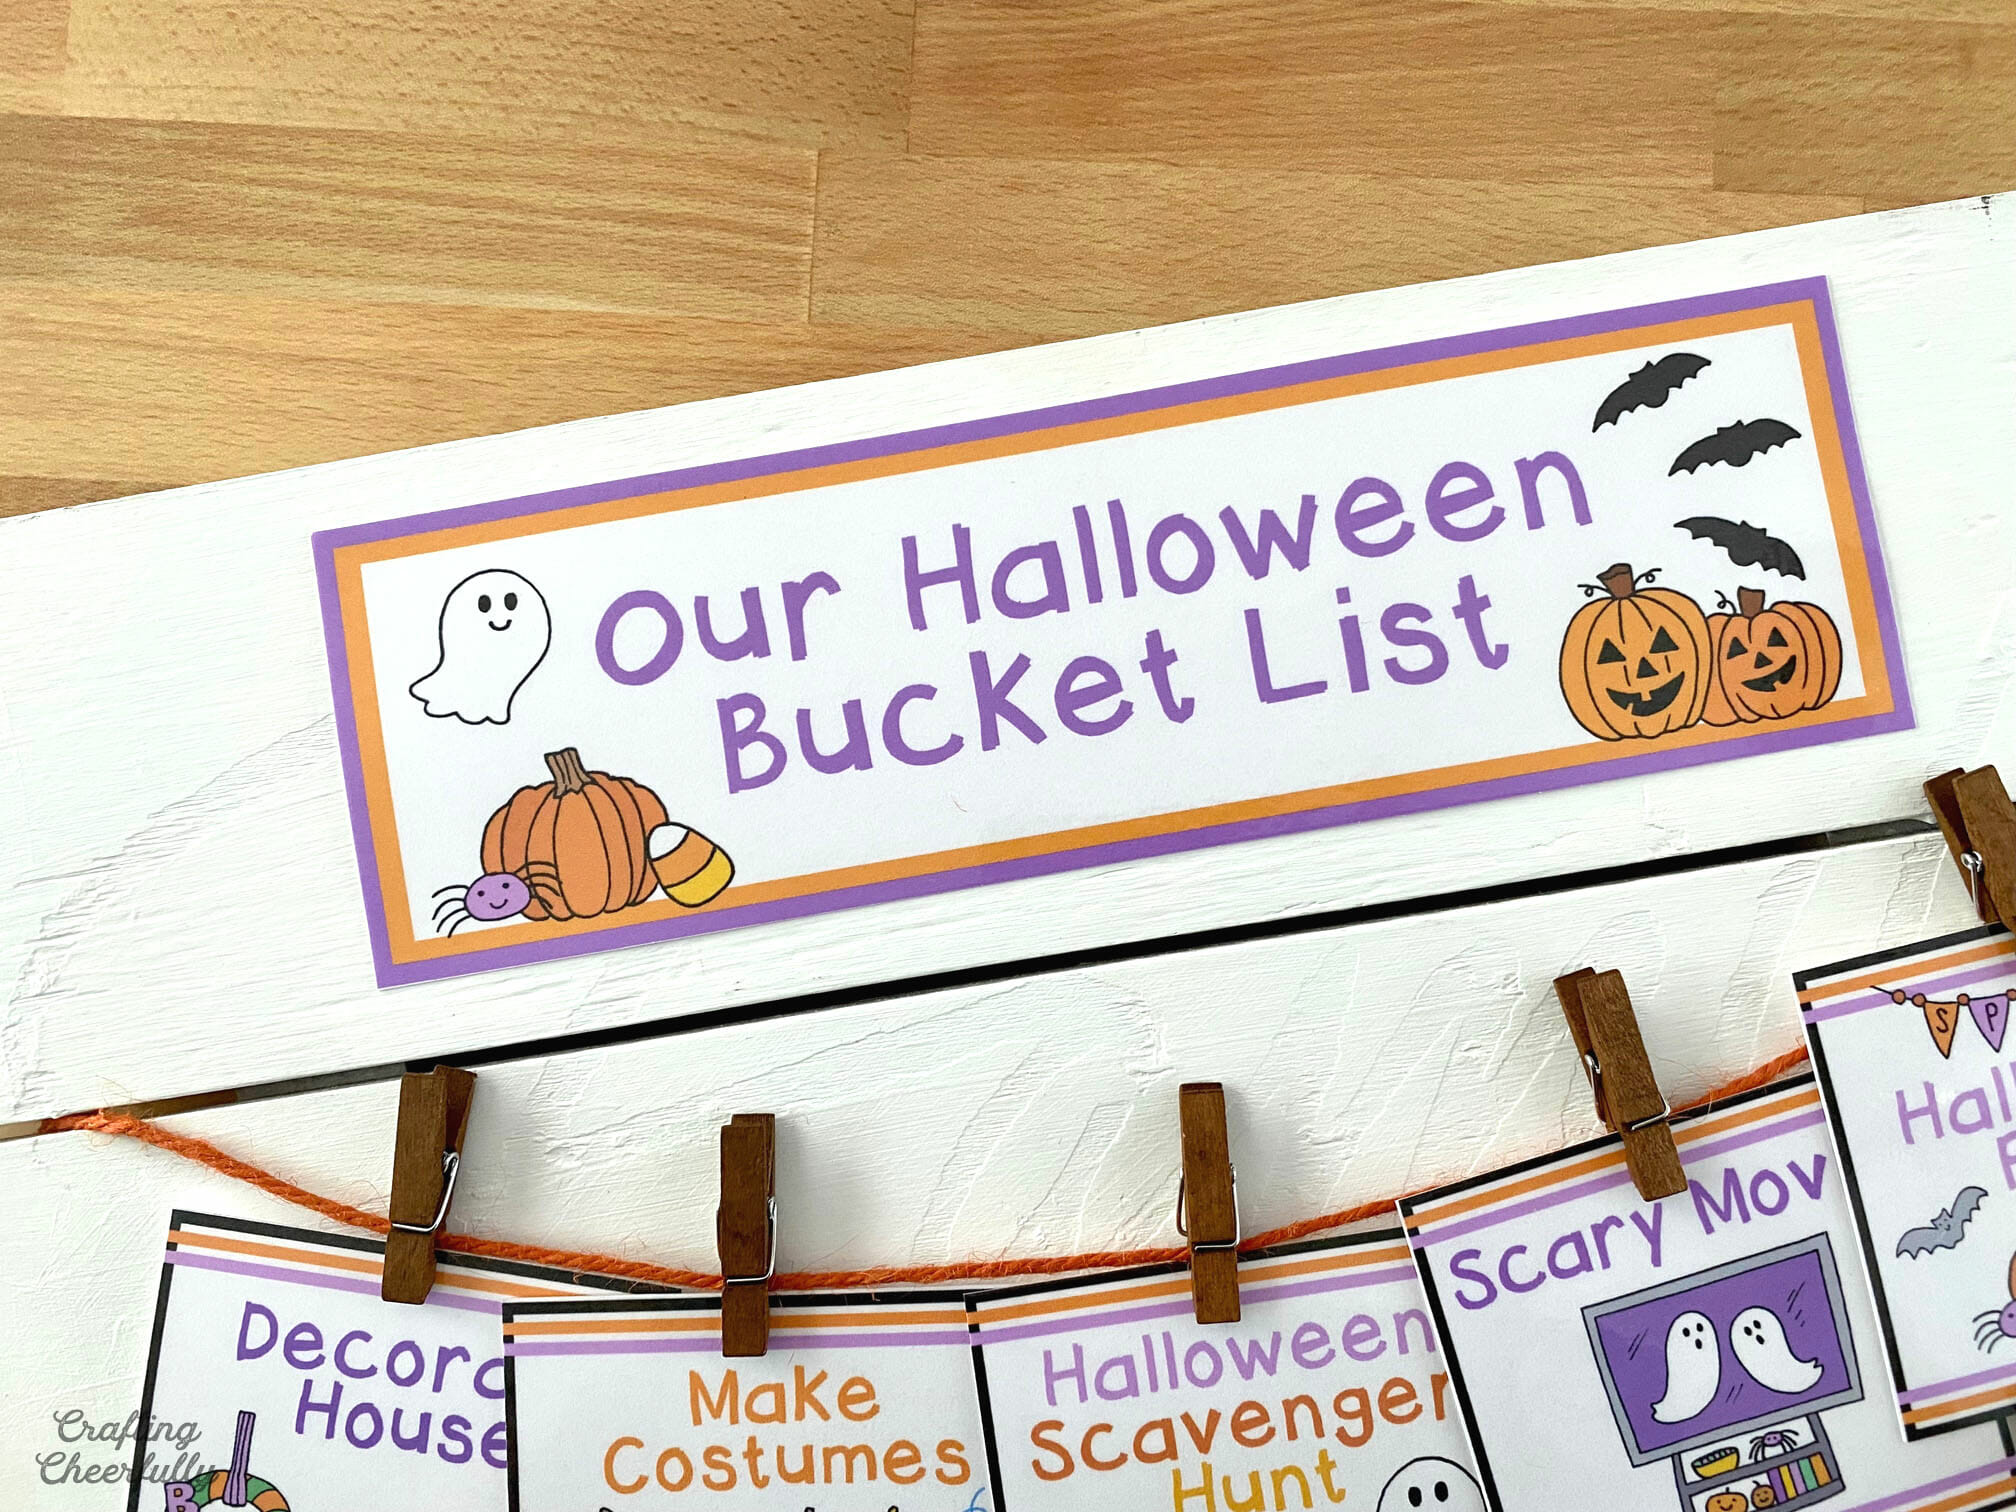 """A close up picture of the header label on the sign that reads """"Our Halloween Bucket List""""."""